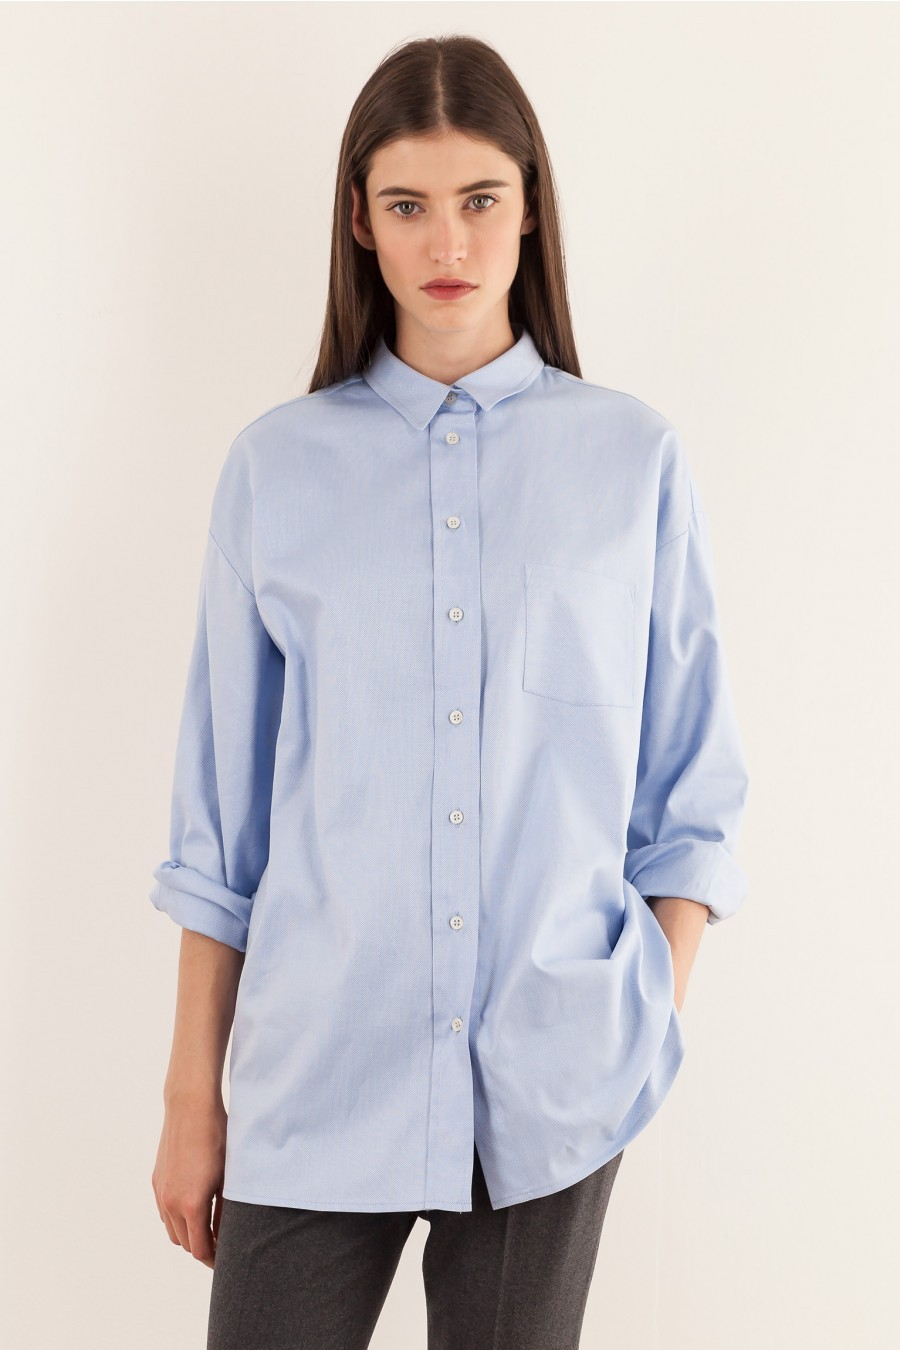 Over shirt in oxford fabric light blue